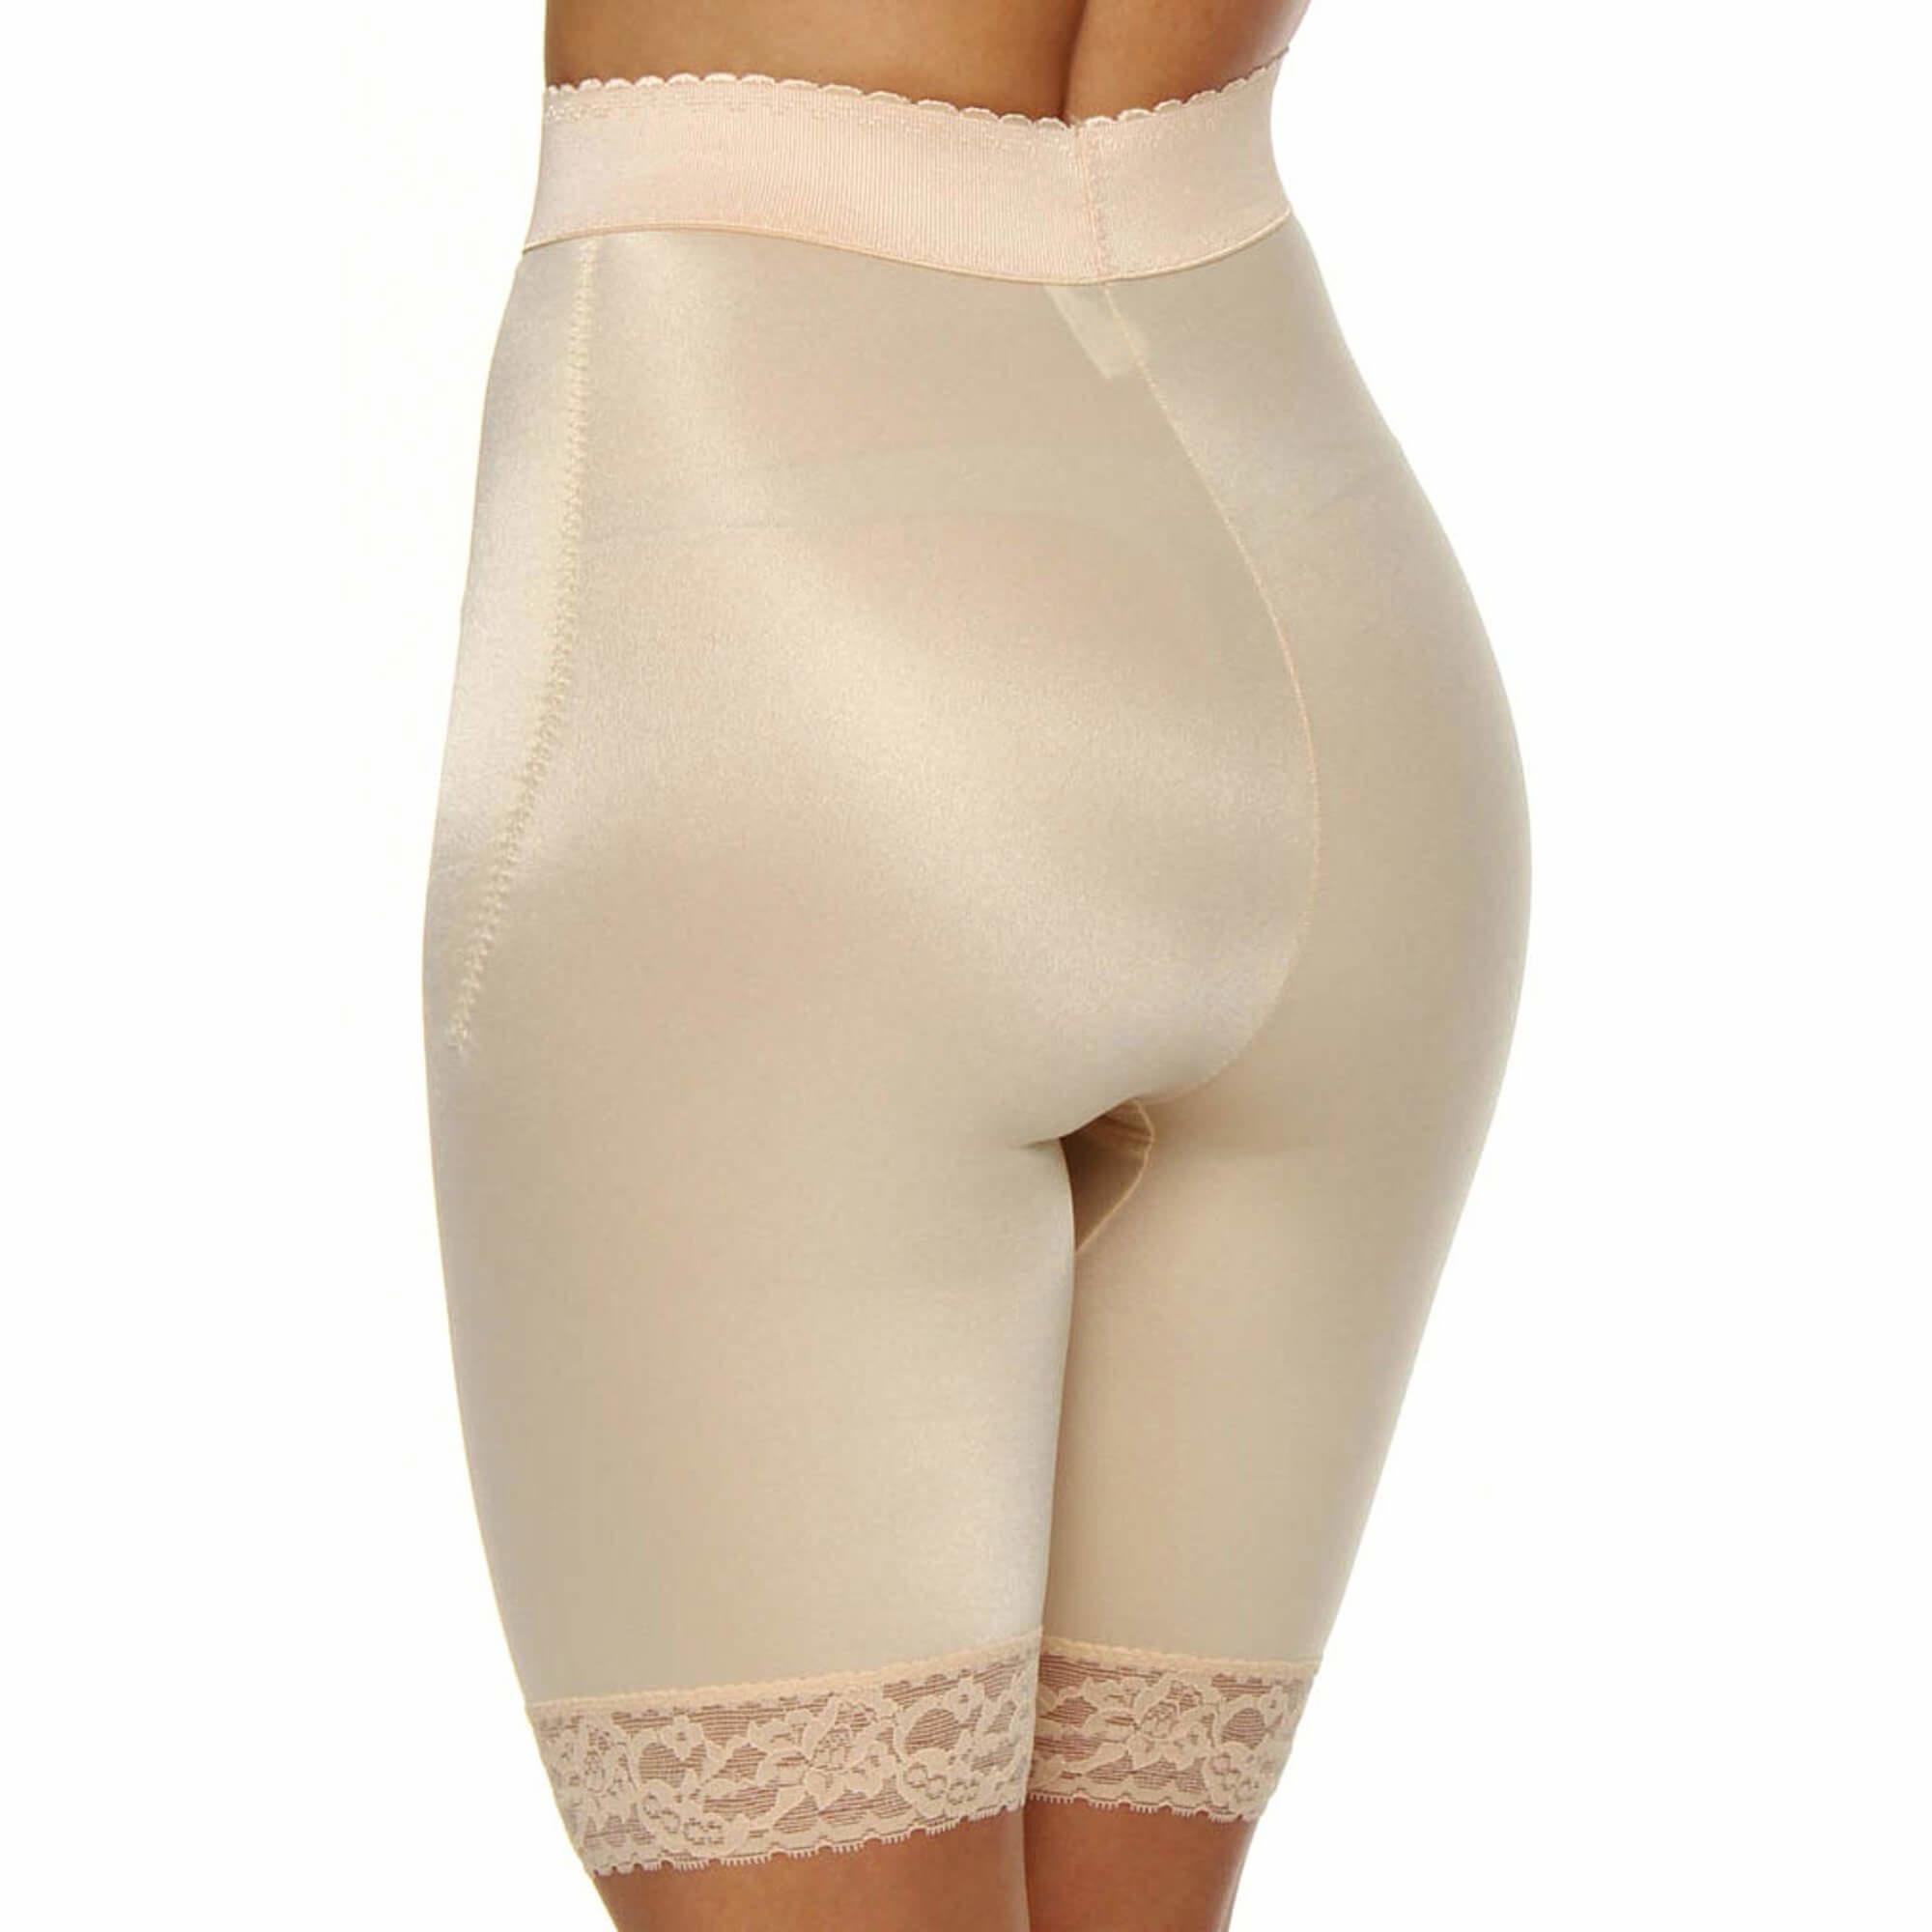 High Waist Long Leg Light Shaper rear